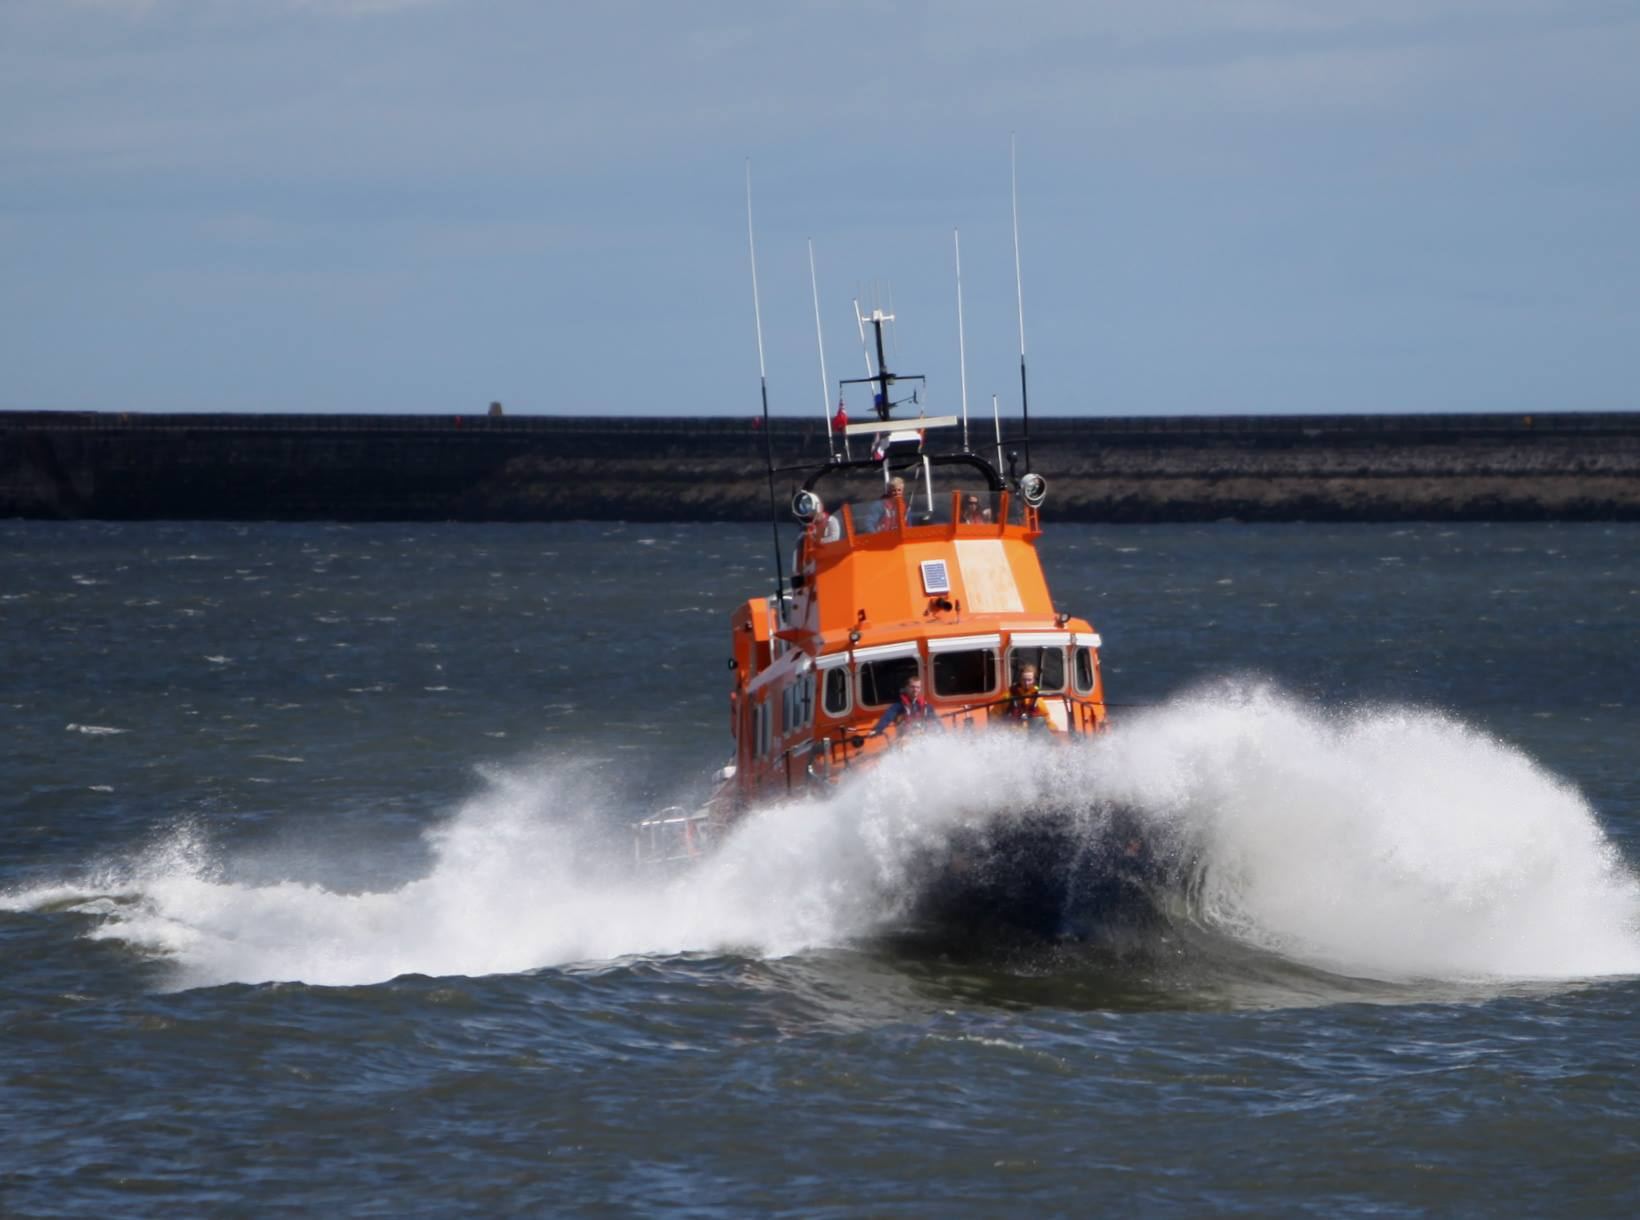 Tynemouth RNLI lifeboat northeast coast